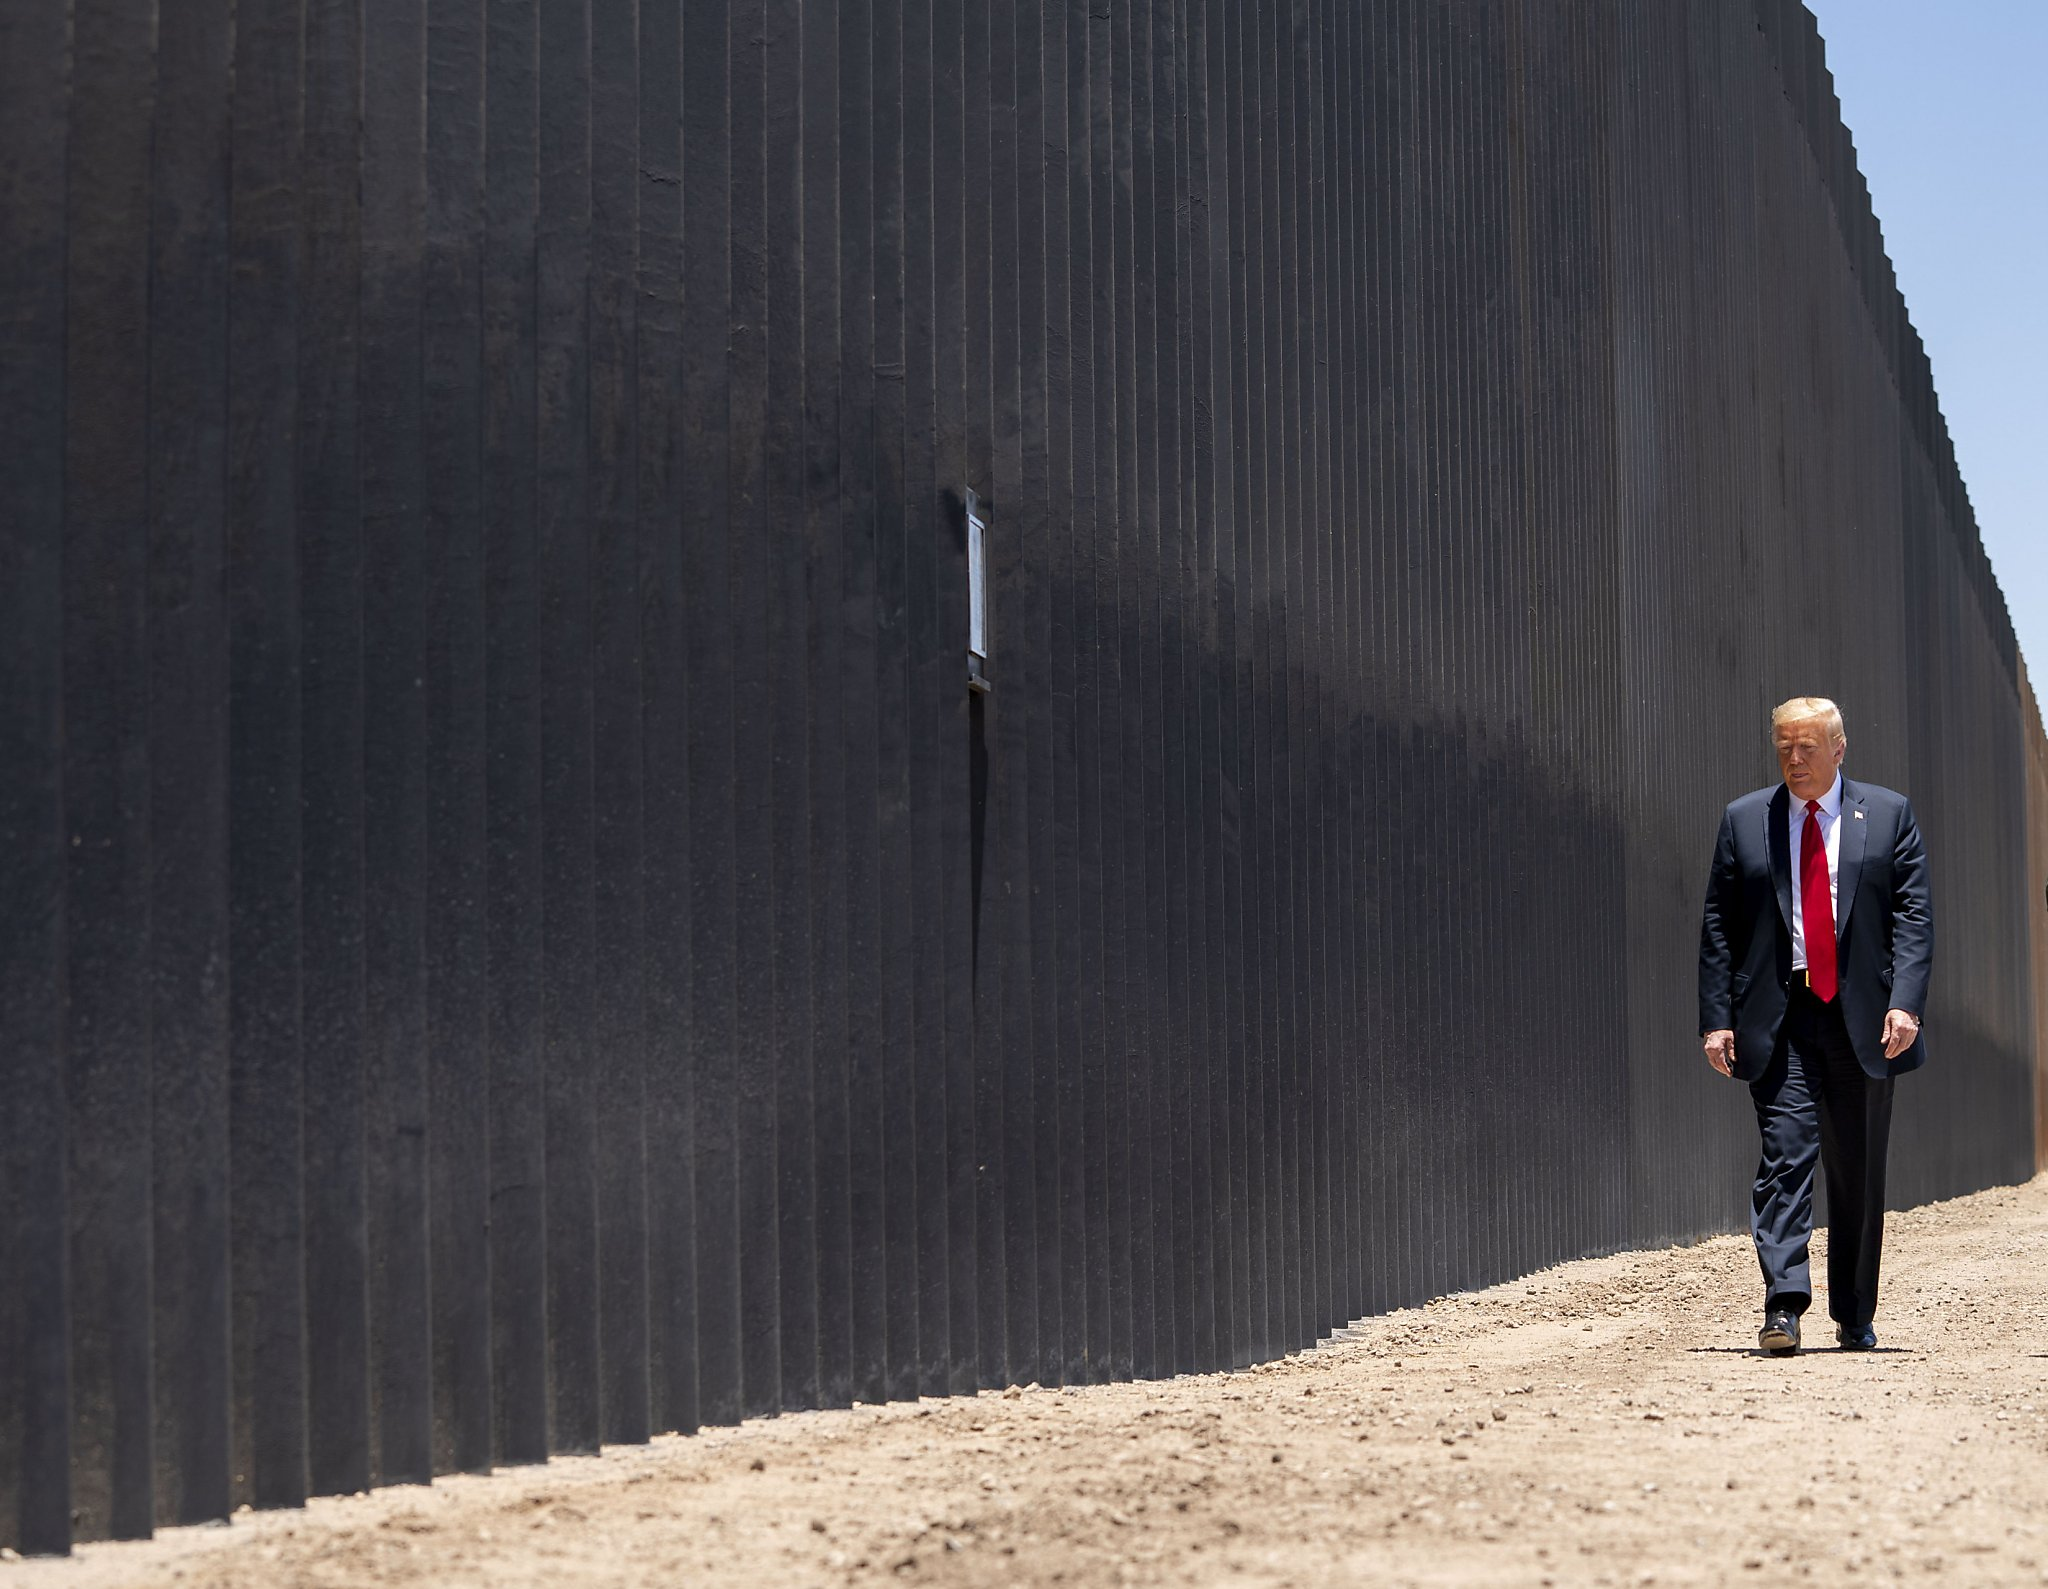 Trump border wall funding plan illegal and construction must stop, court  rules - SFChronicle.com